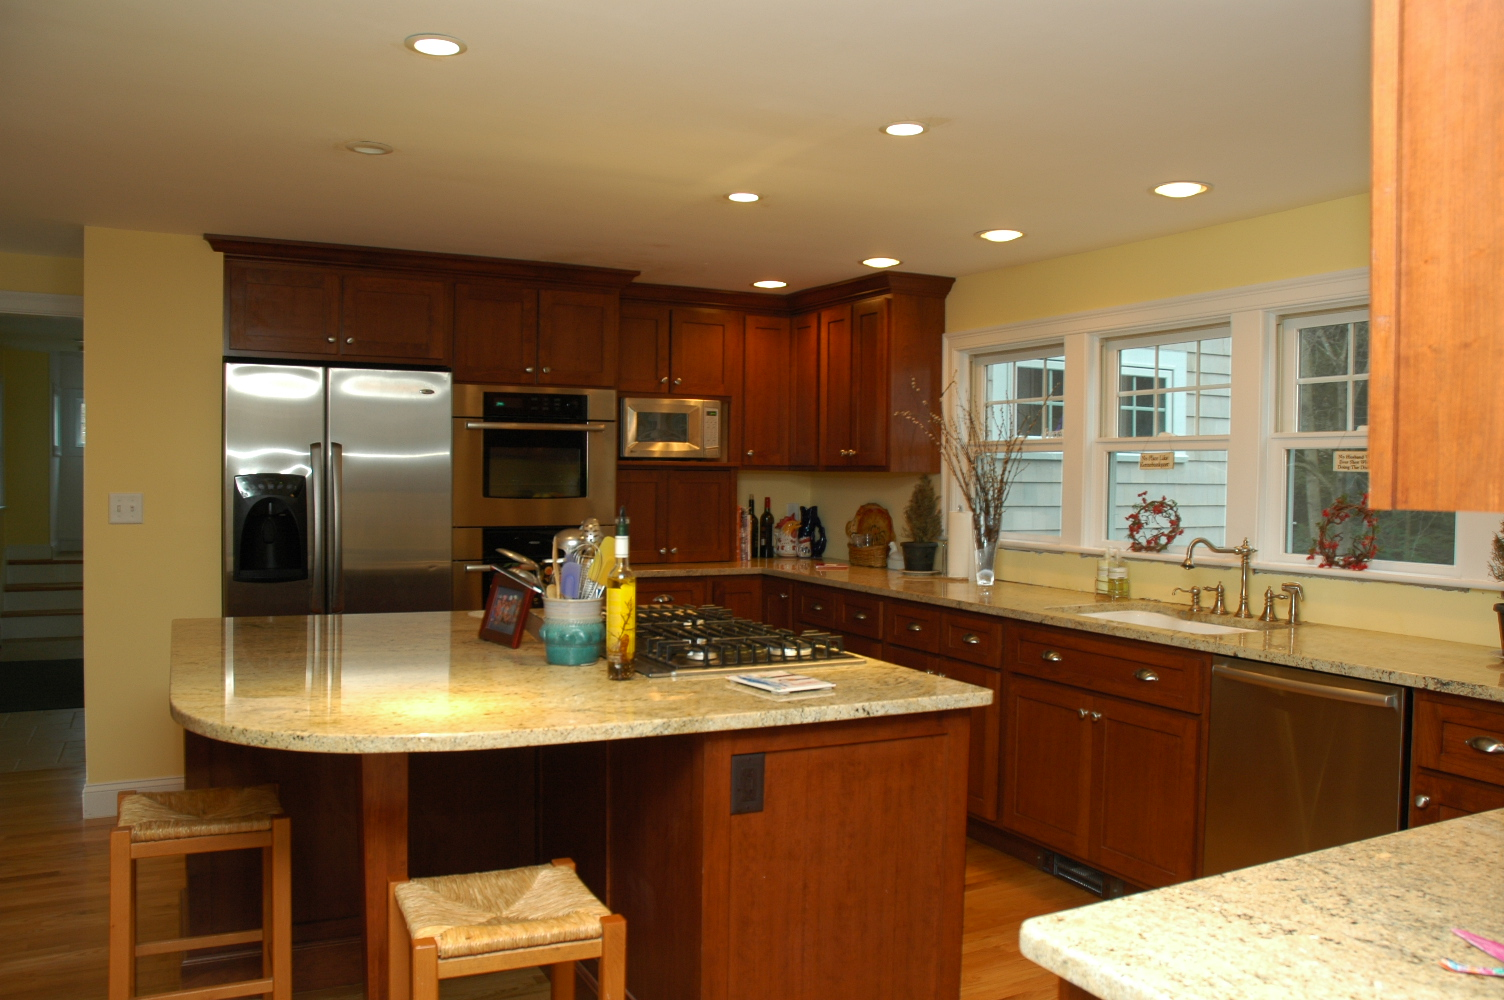 Appealing Design Of The Kitchen Areas With Brown Wooden Kitchen Island Design With Kitchen Cabinets